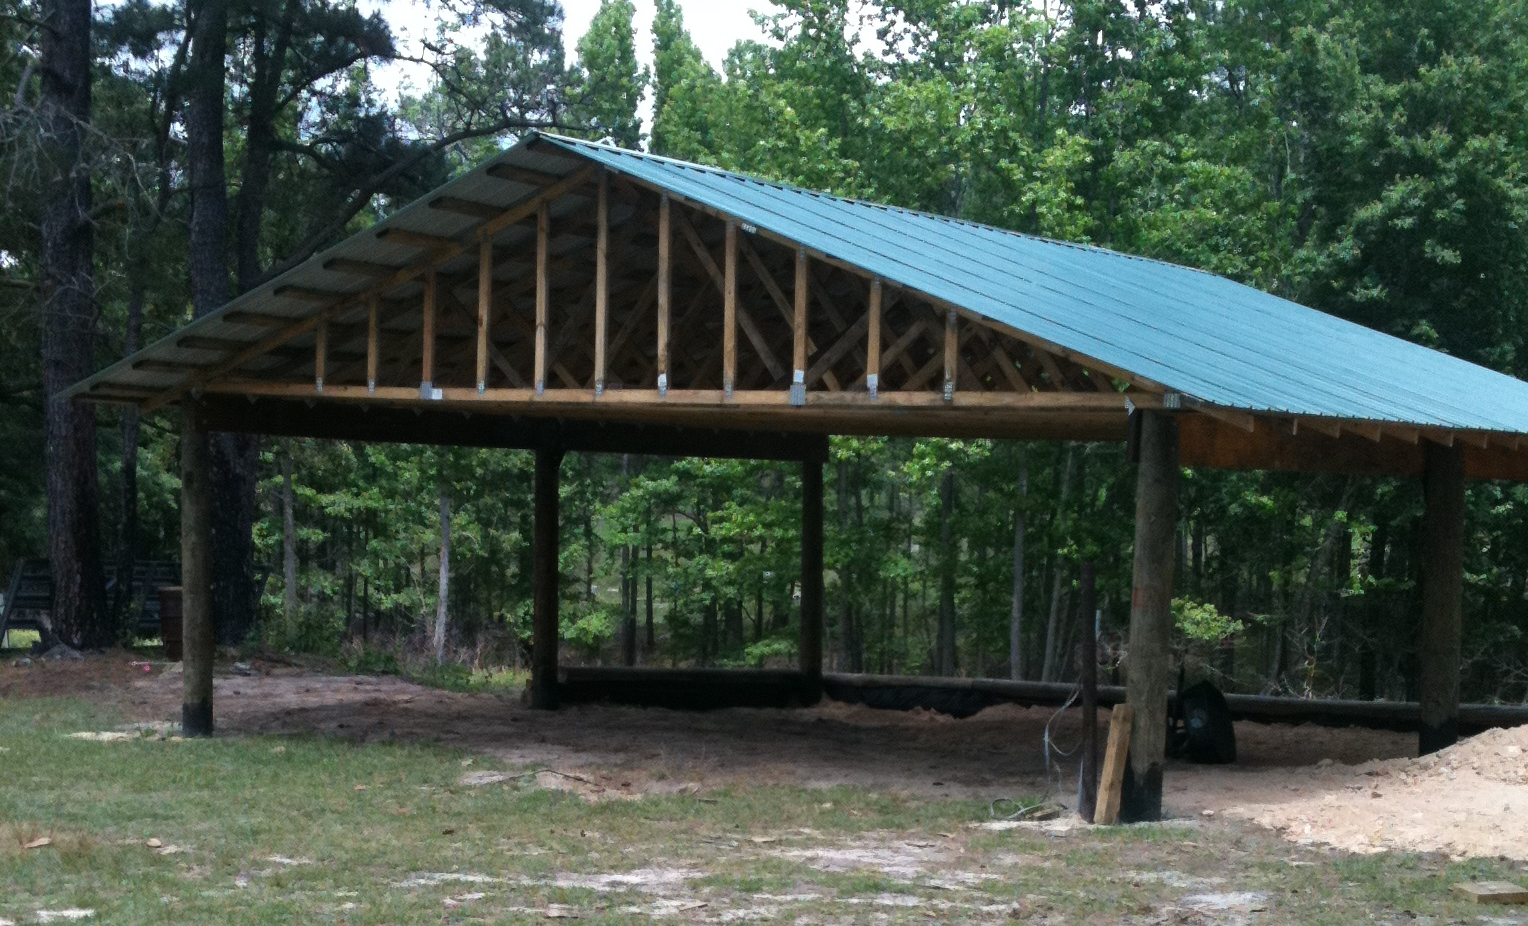 Roof Complete!